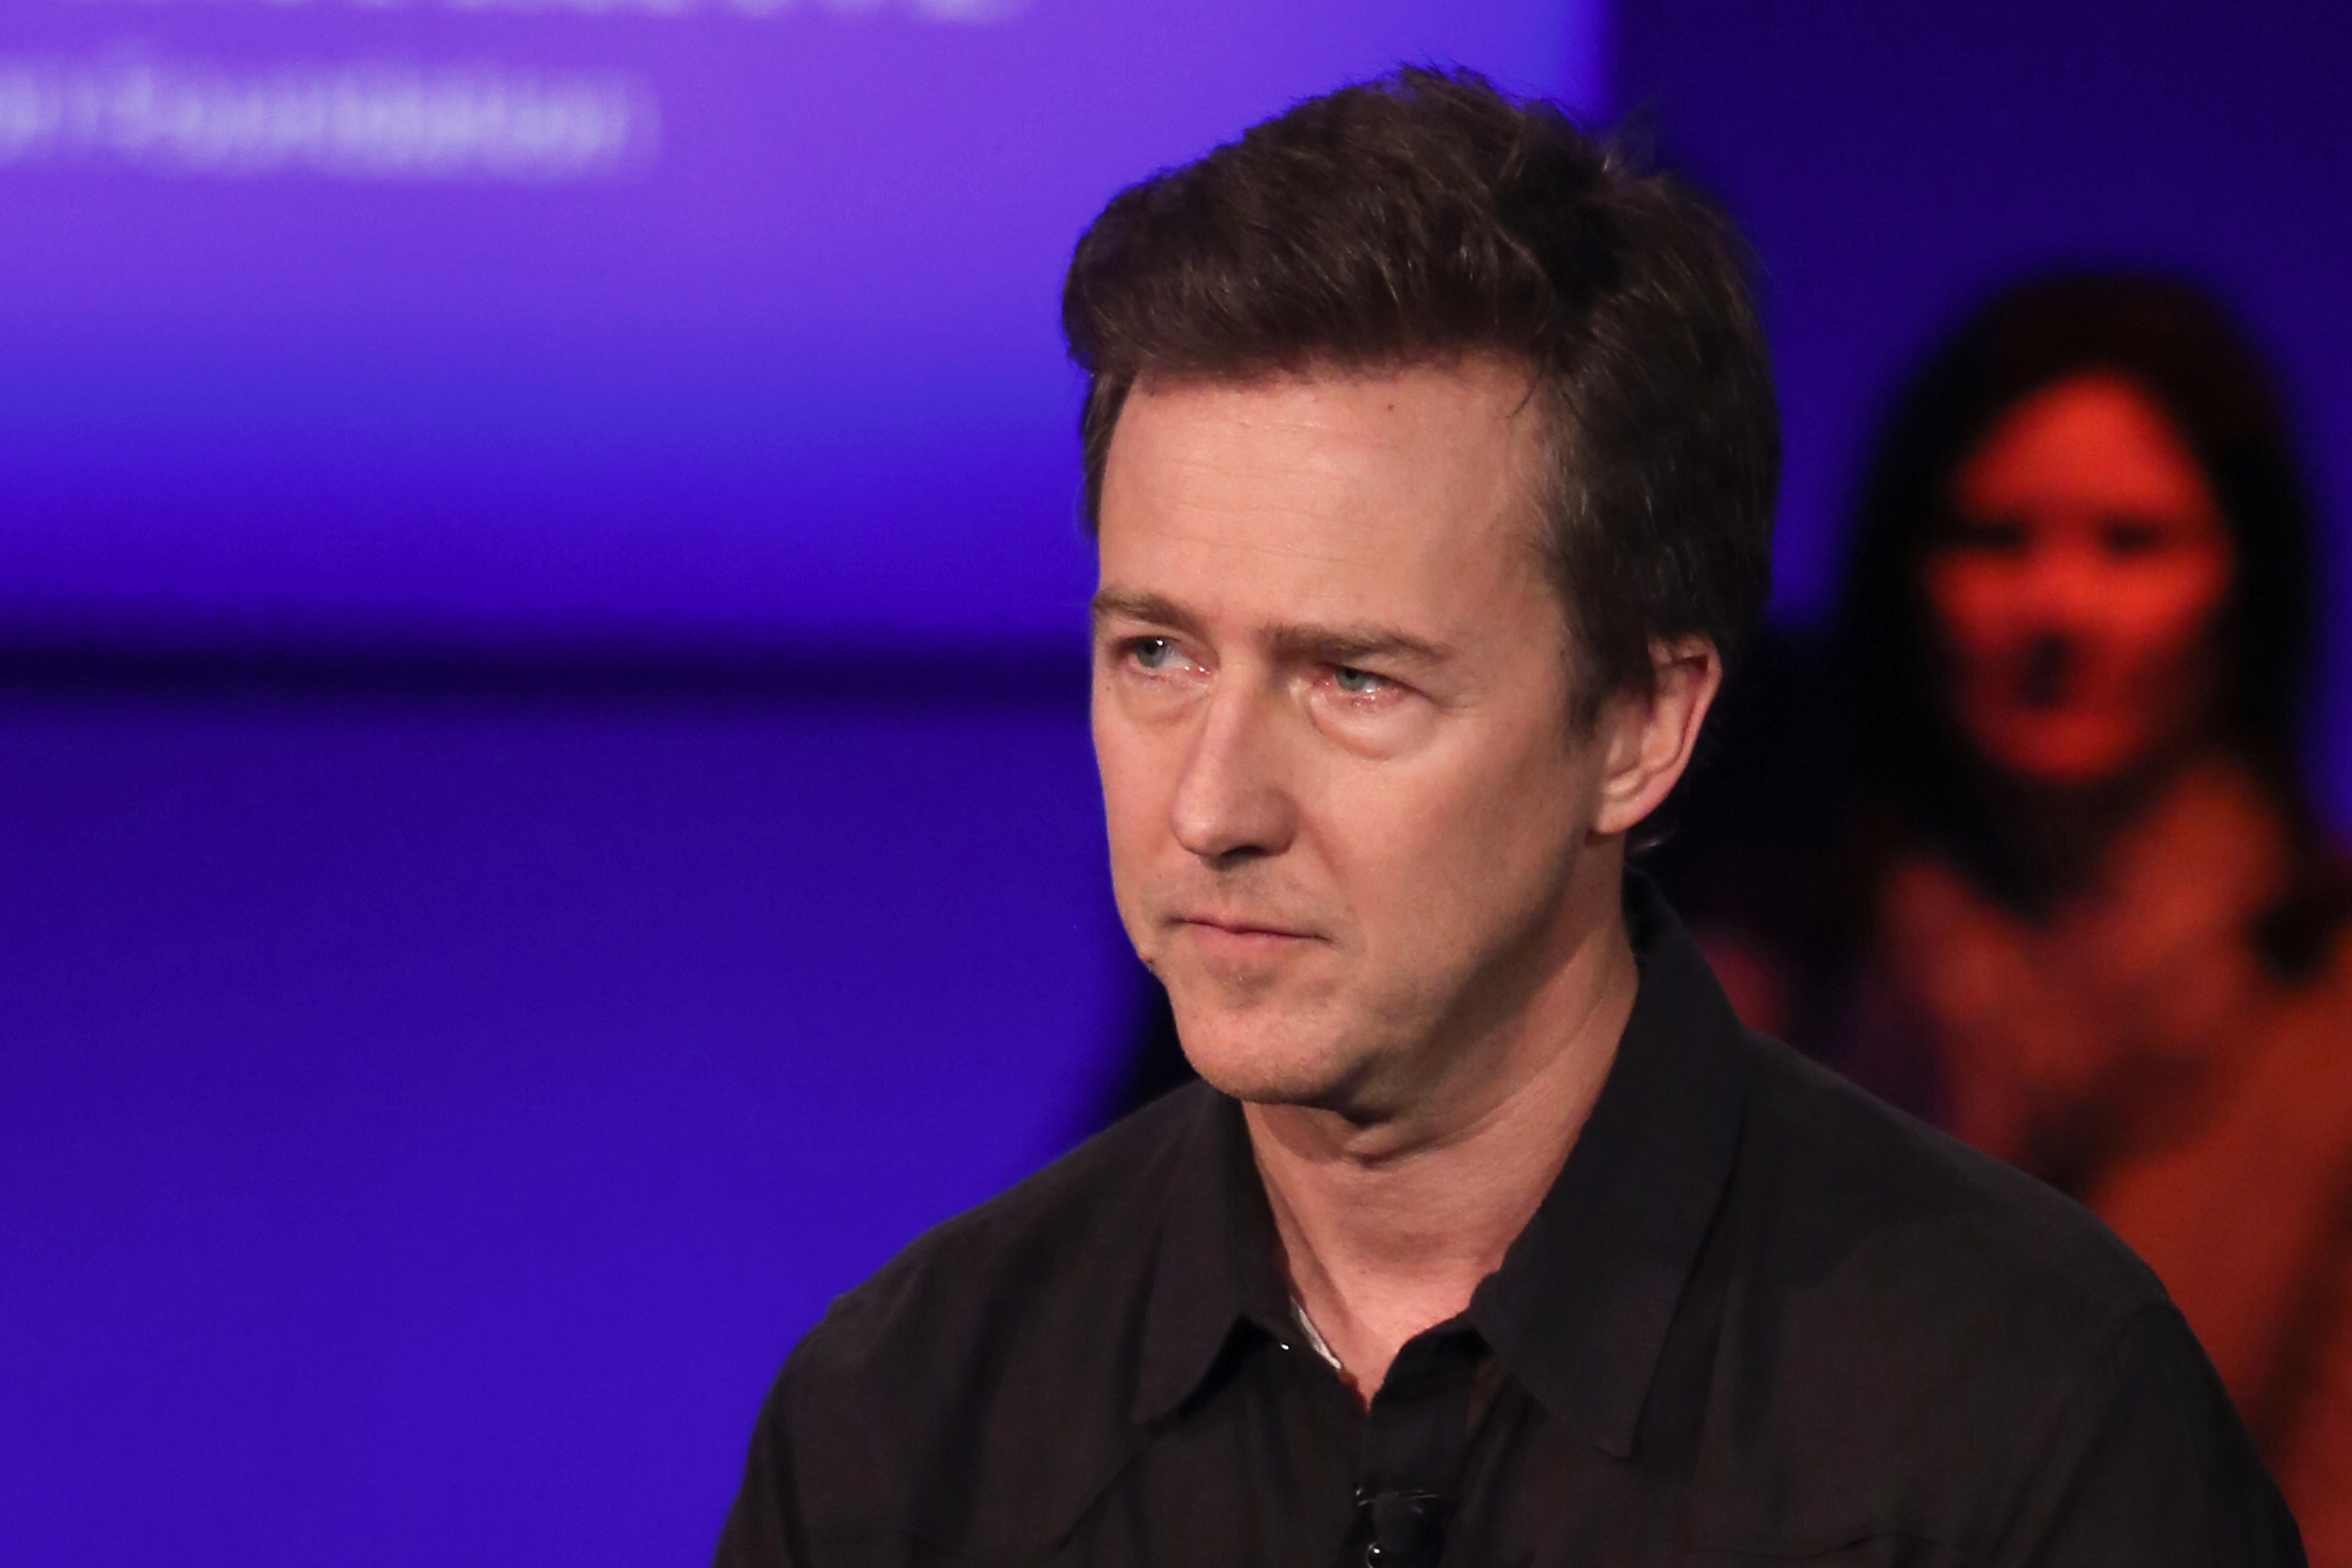 Edward Norton in a panel discussion at the Clinton Global Initiative Annual Meeting, in New York City on September 29, 2015.